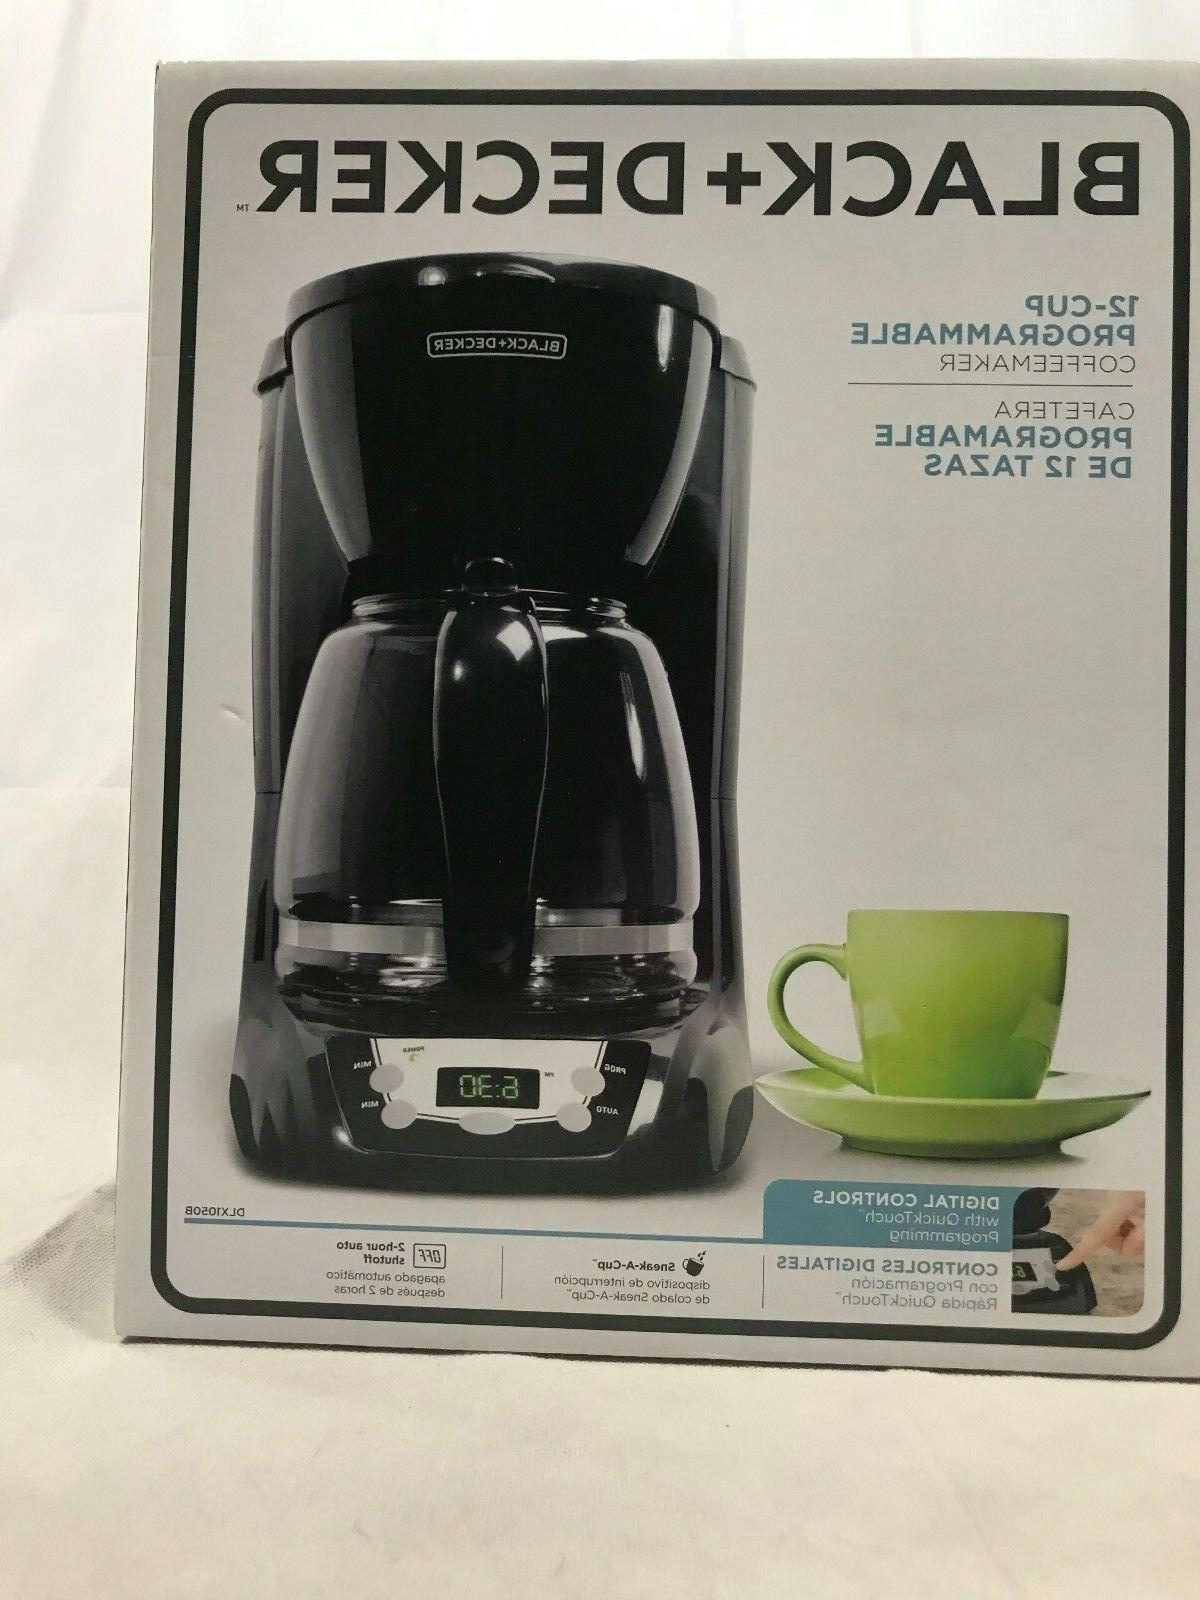 Black + Decker DLX1050B 12-Cup Programmable Coffeemaker with